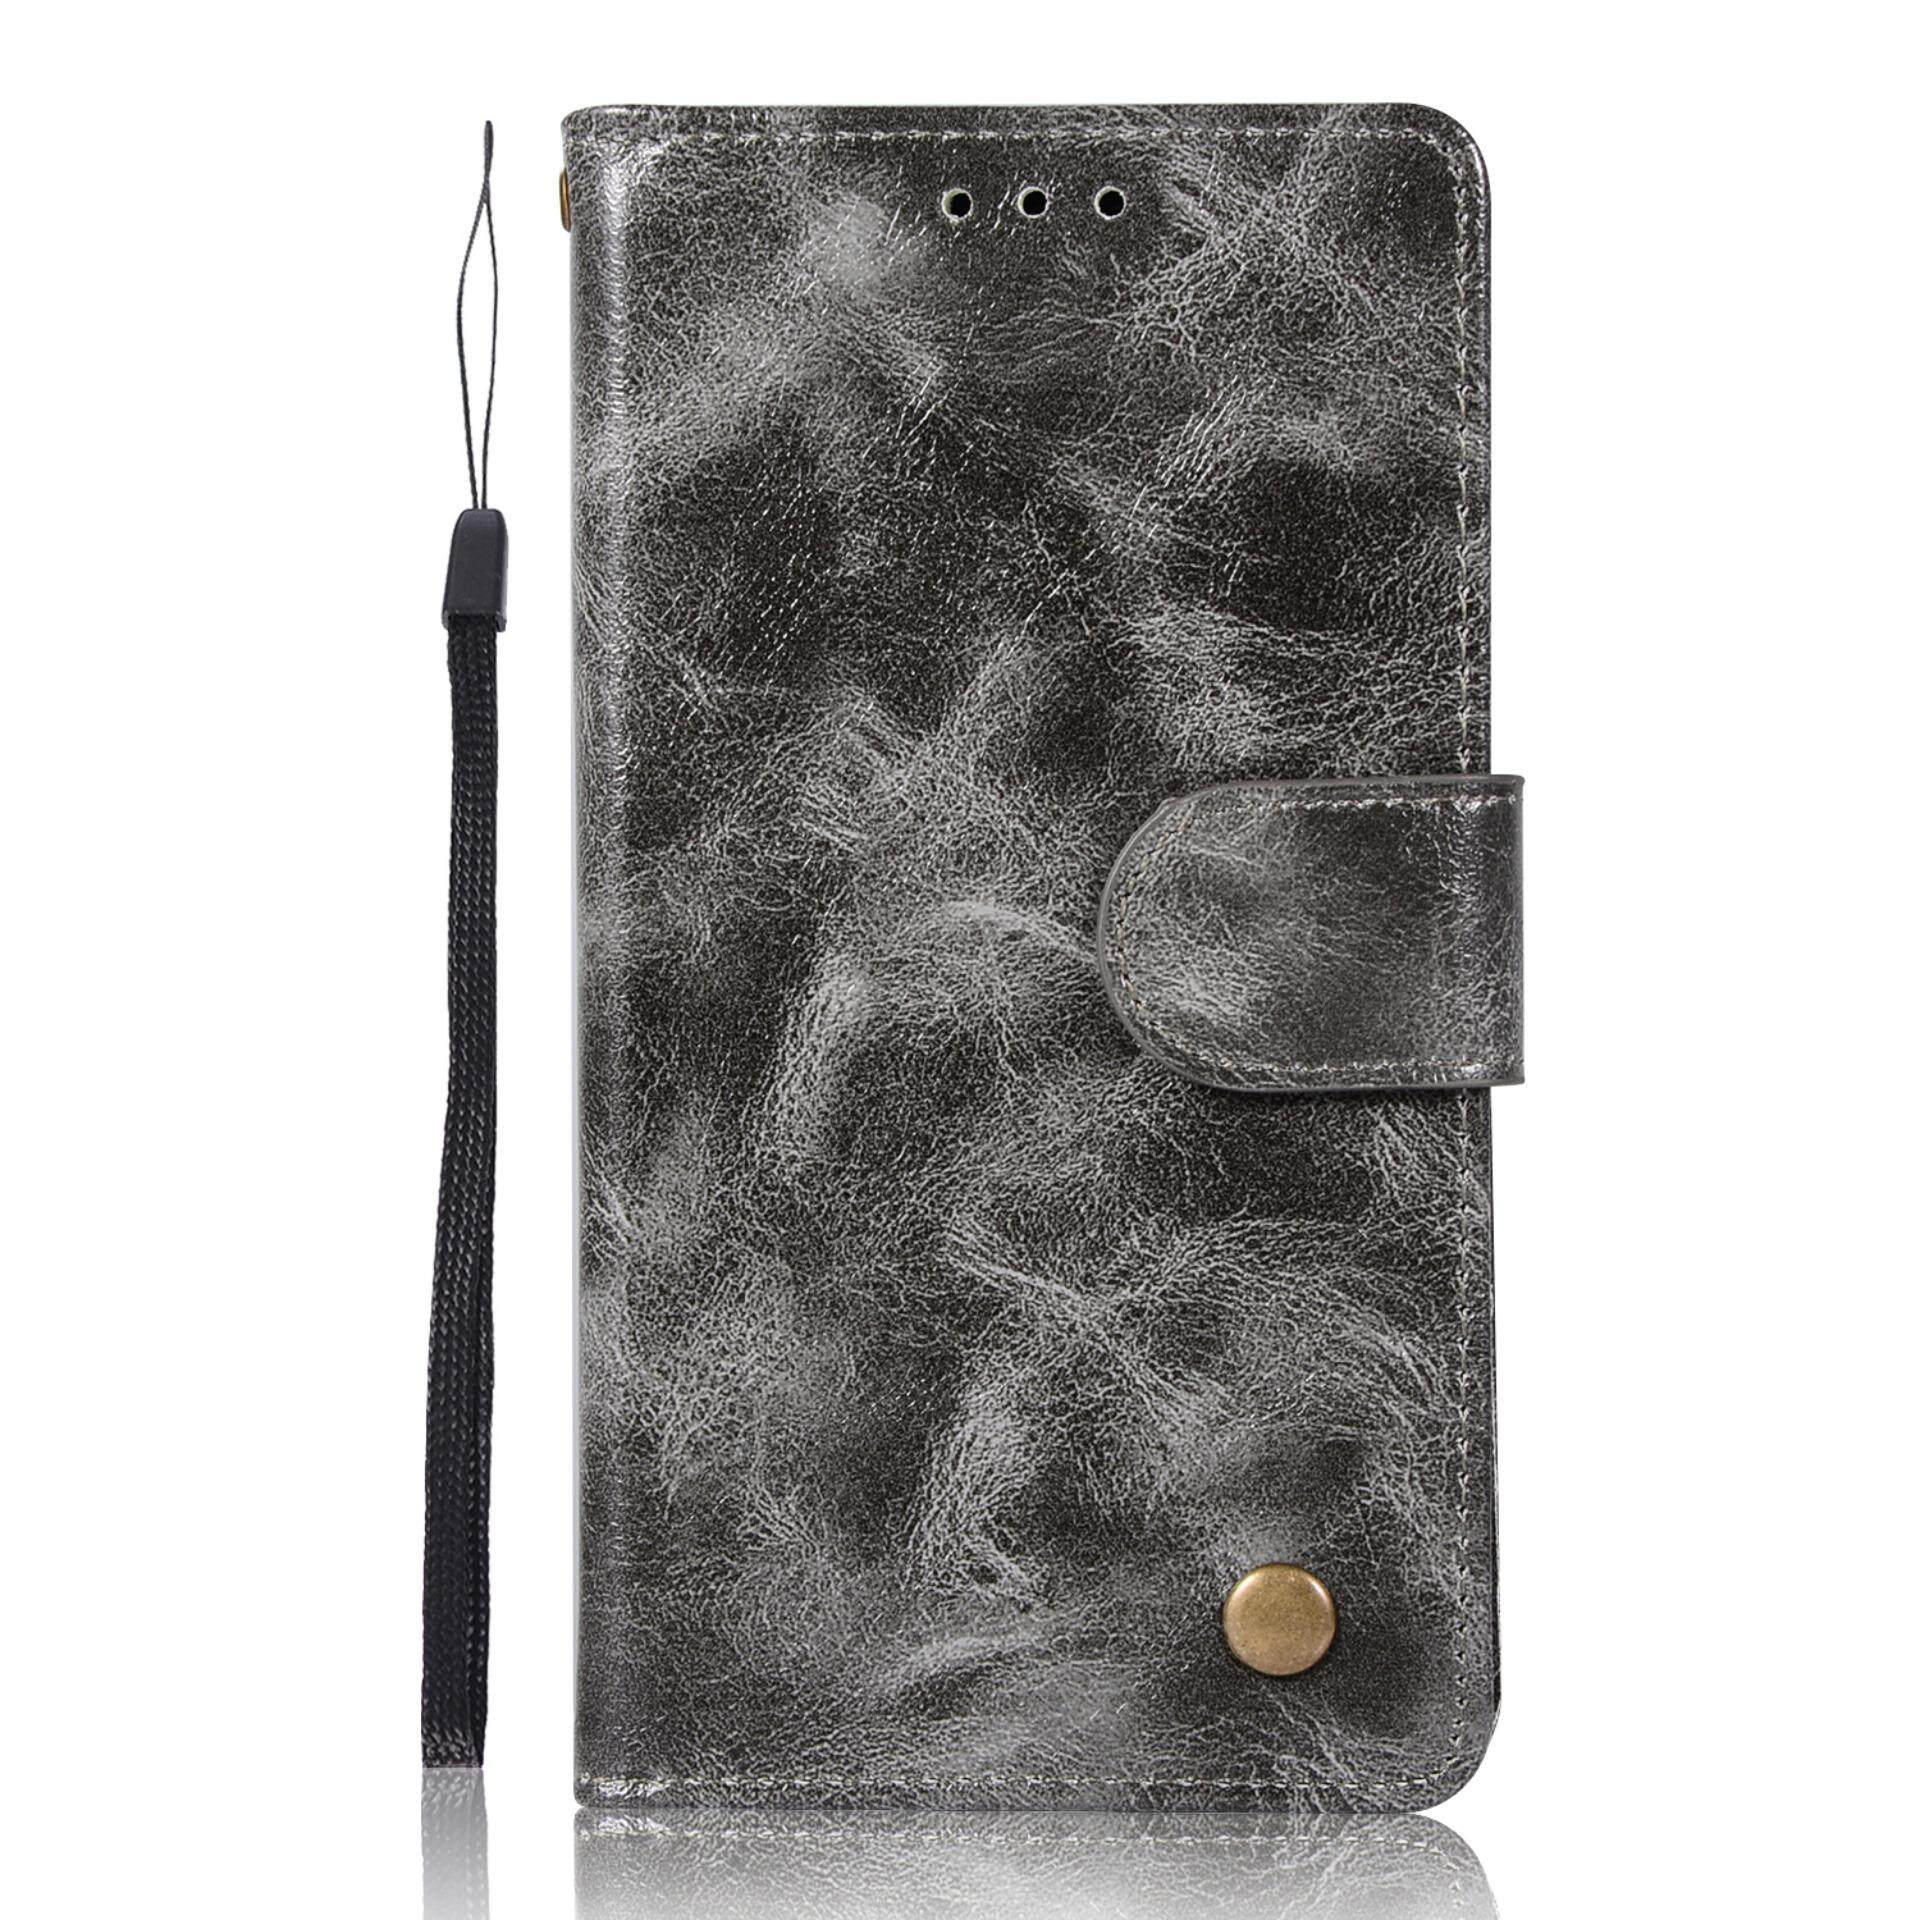 Pu Leather Flip Stand Case Cover For Asus Zenfone 2 Laser Ze601kl 60 Free Sg Retro 3 Ze552kl 55 Inch Source